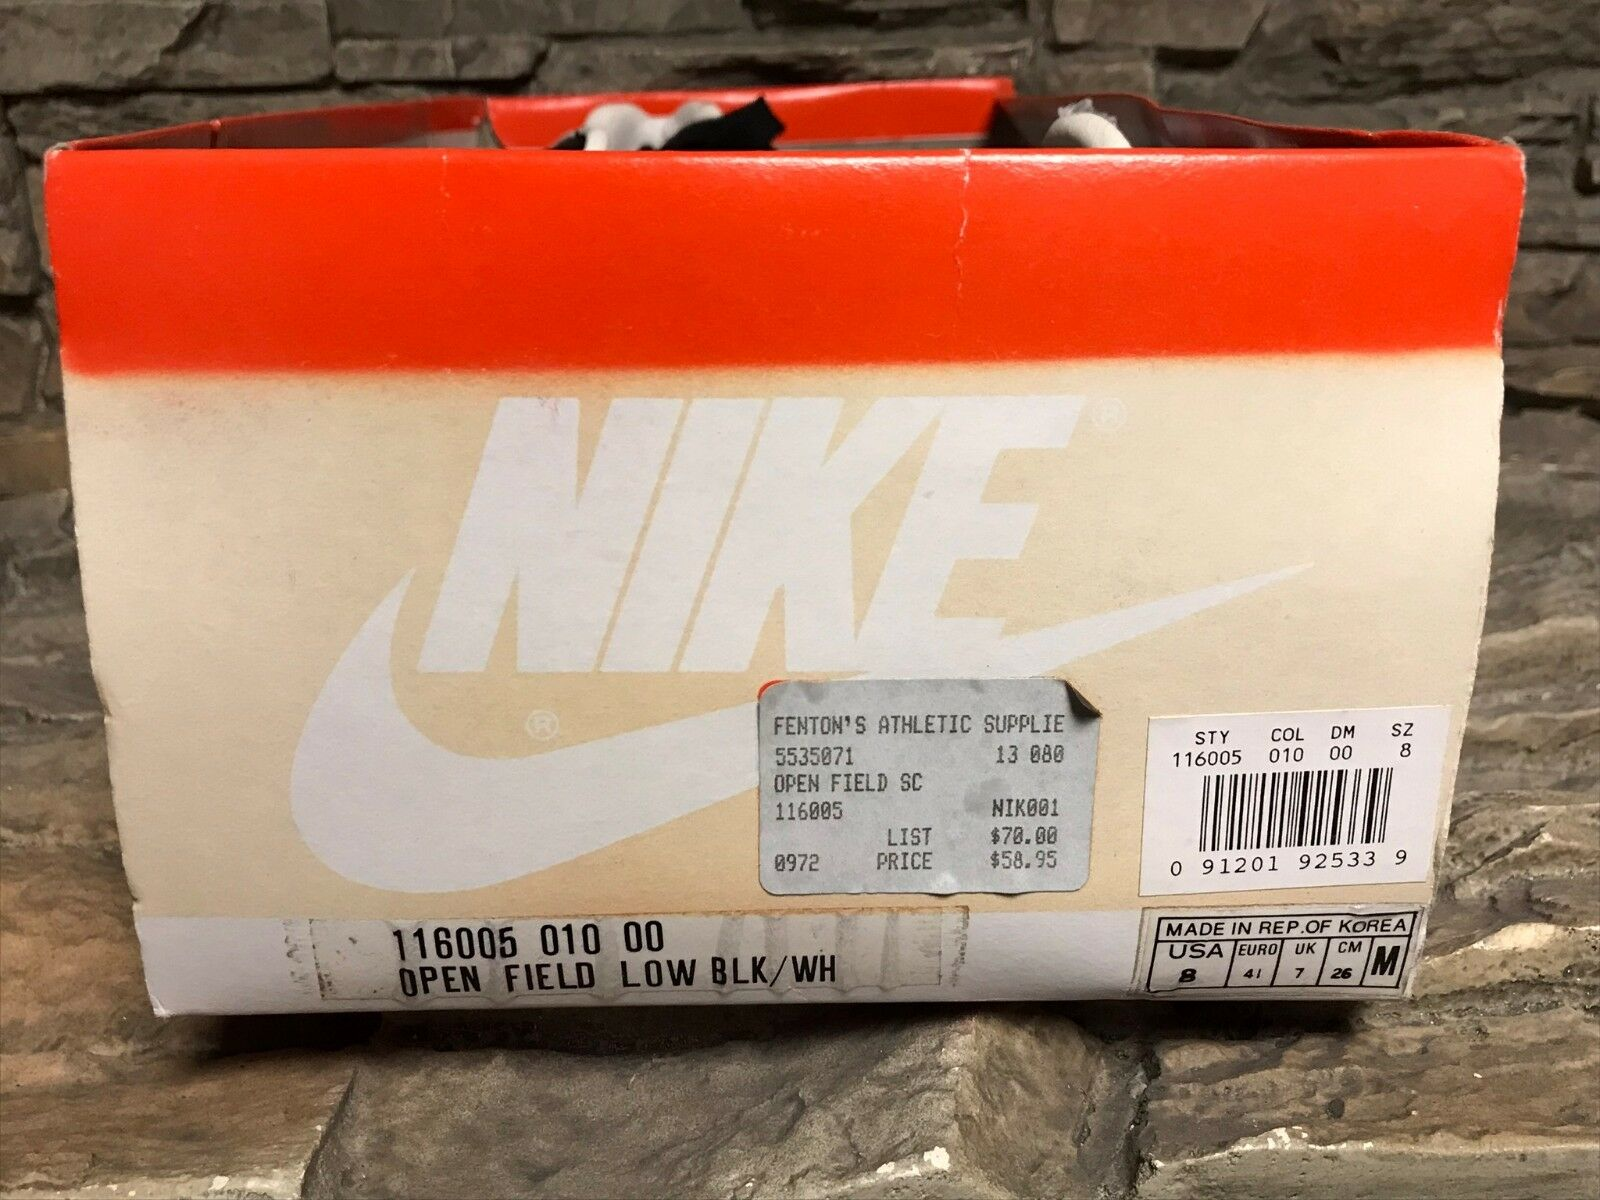 VTG OG Nike Open Field Low Nero Shoes Cleats Rare Display Box NOS New Uomo Sz 8